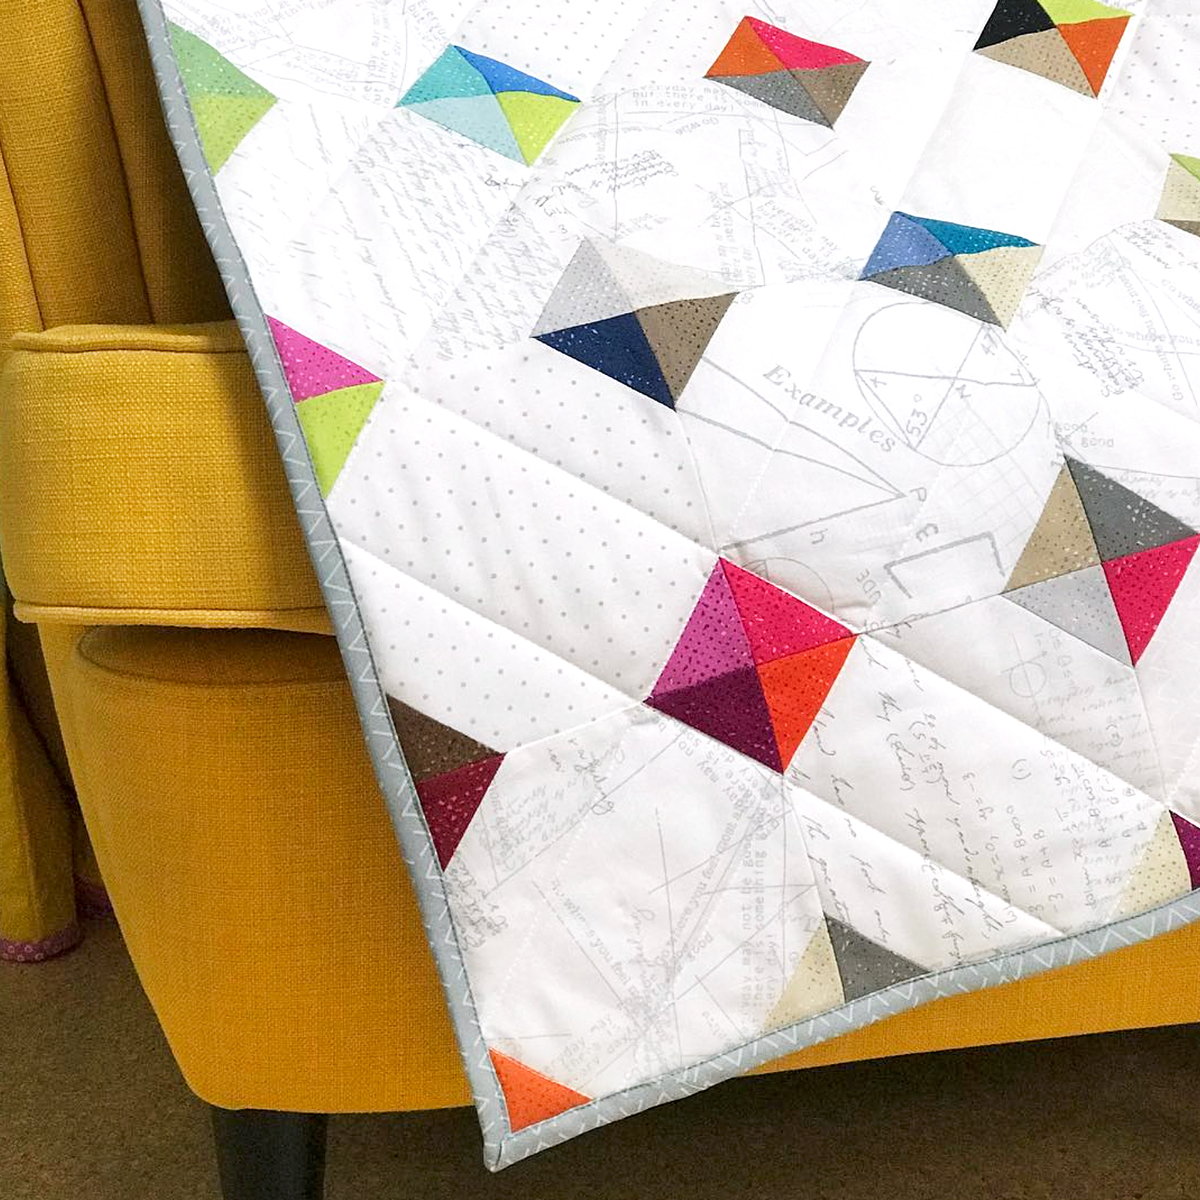 Engaging textures and dynamic colors make Zen Chic's Spotted New Colors fabric line the ideal match for Purl Soho's Tiny Tiles free quilt pattern.